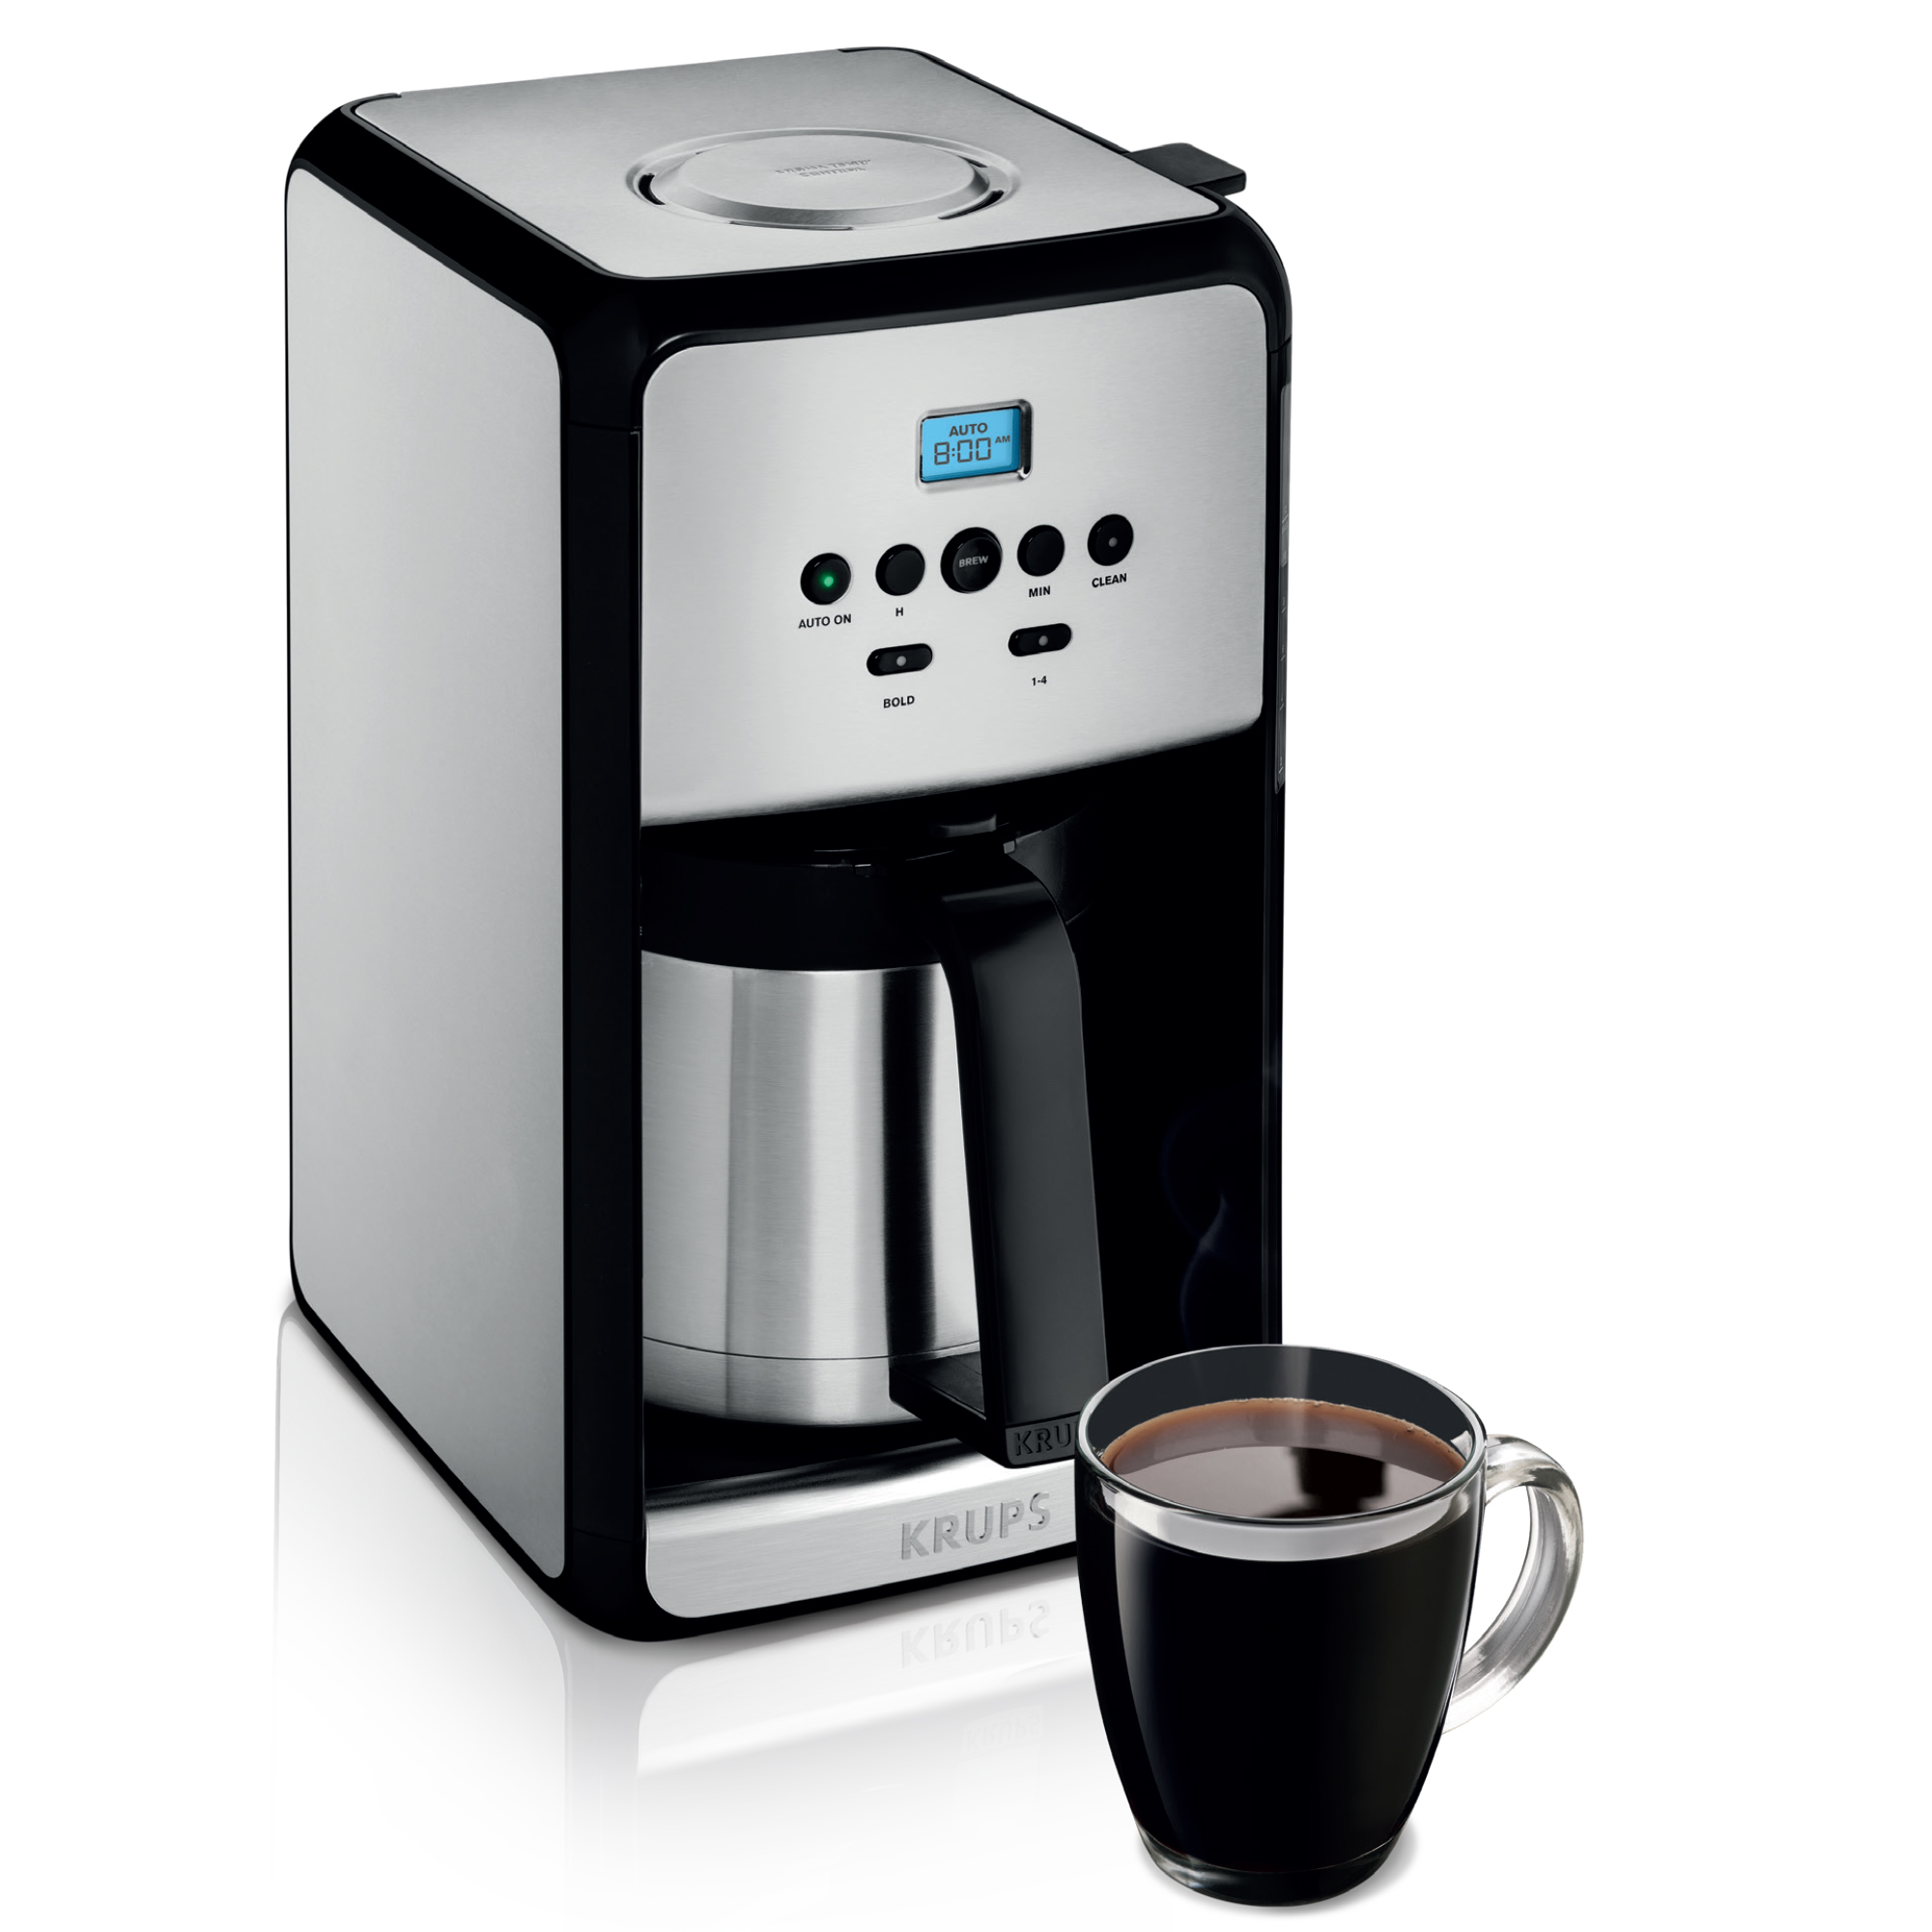 KRUPS 12 Cup Programmable Thermal Filter Coffee Maker Stainless